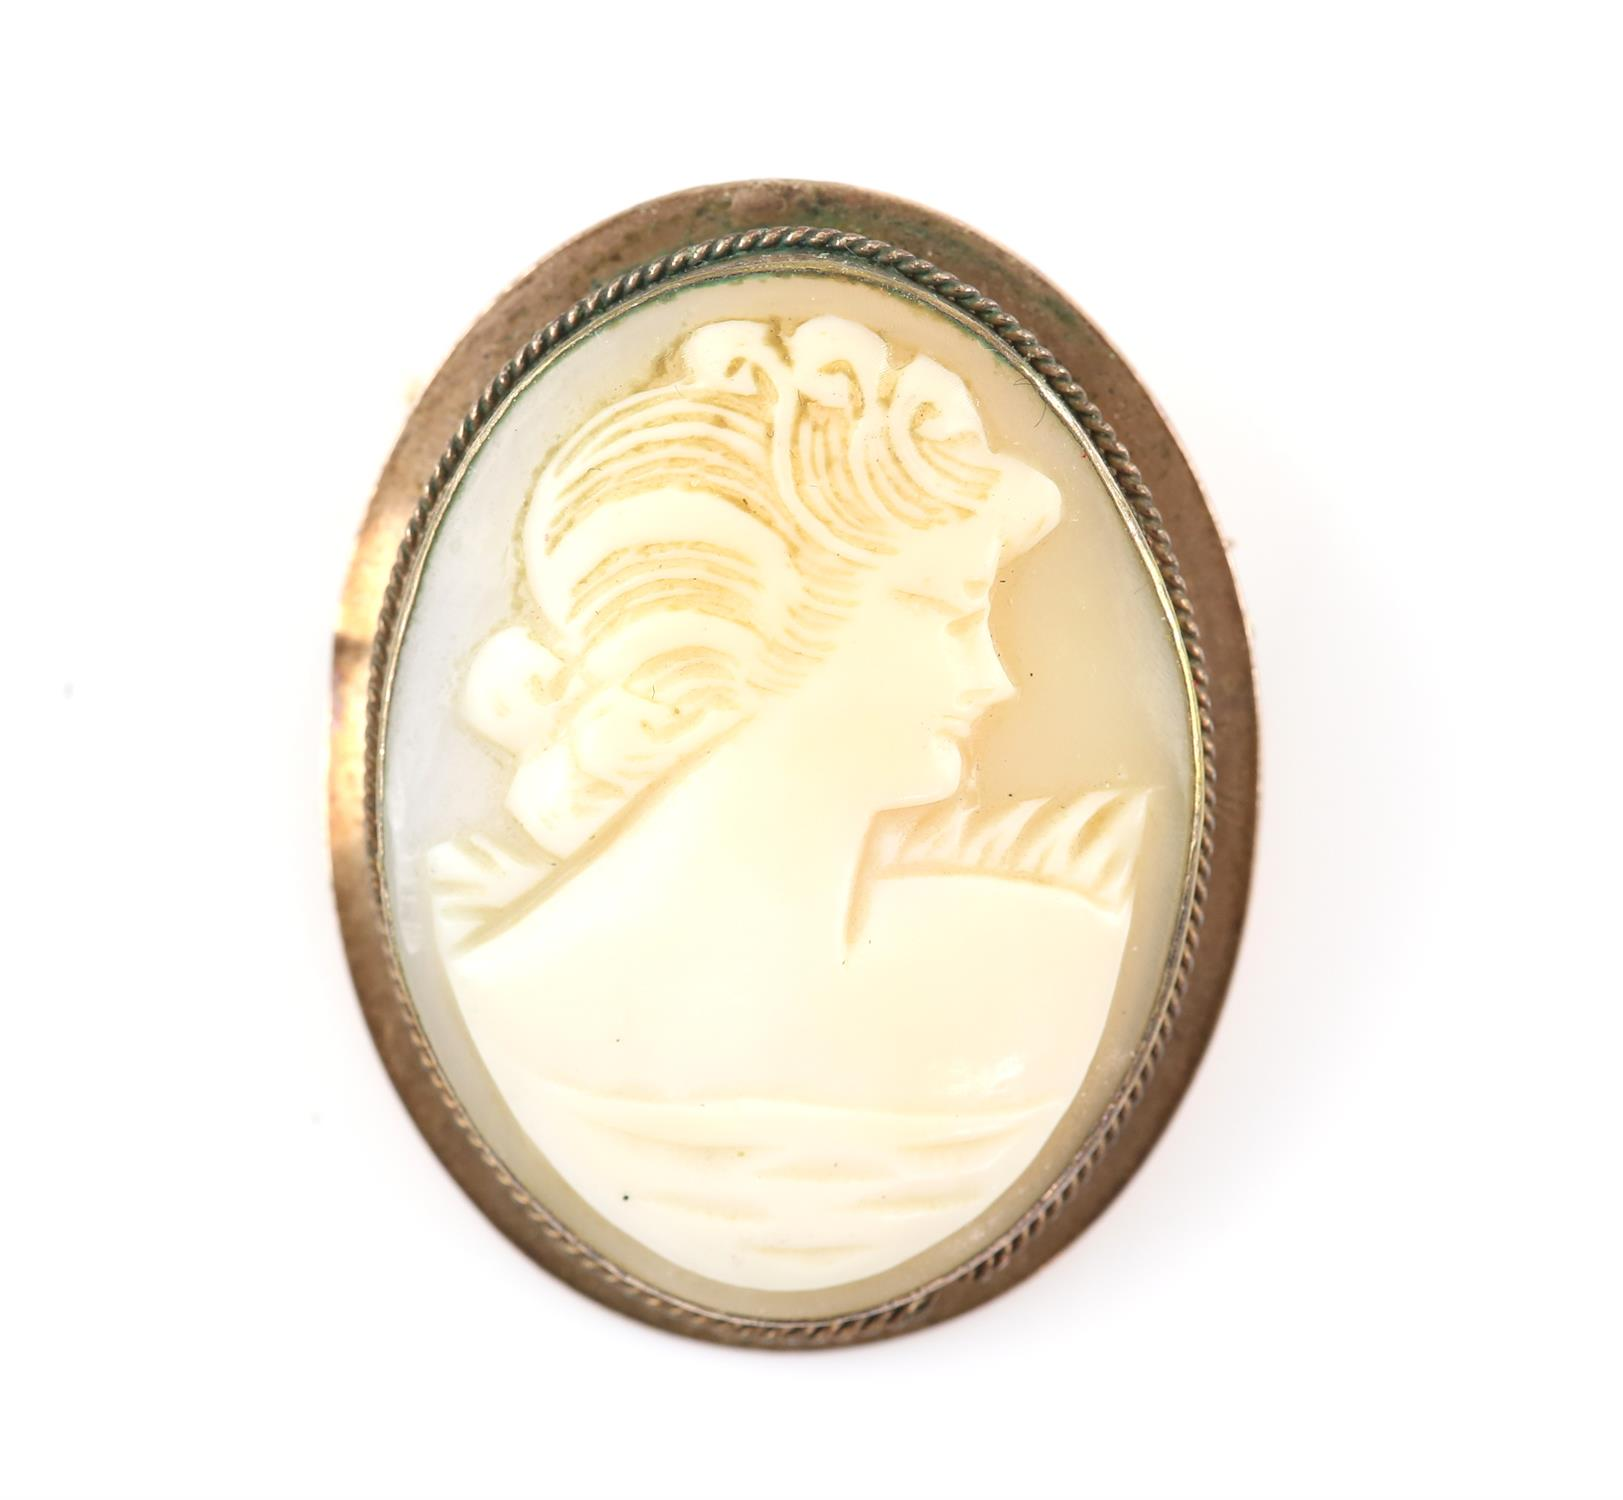 Cameo brooch, depicting the profile of a lady, in a tested 9 ct mount, with safety chain